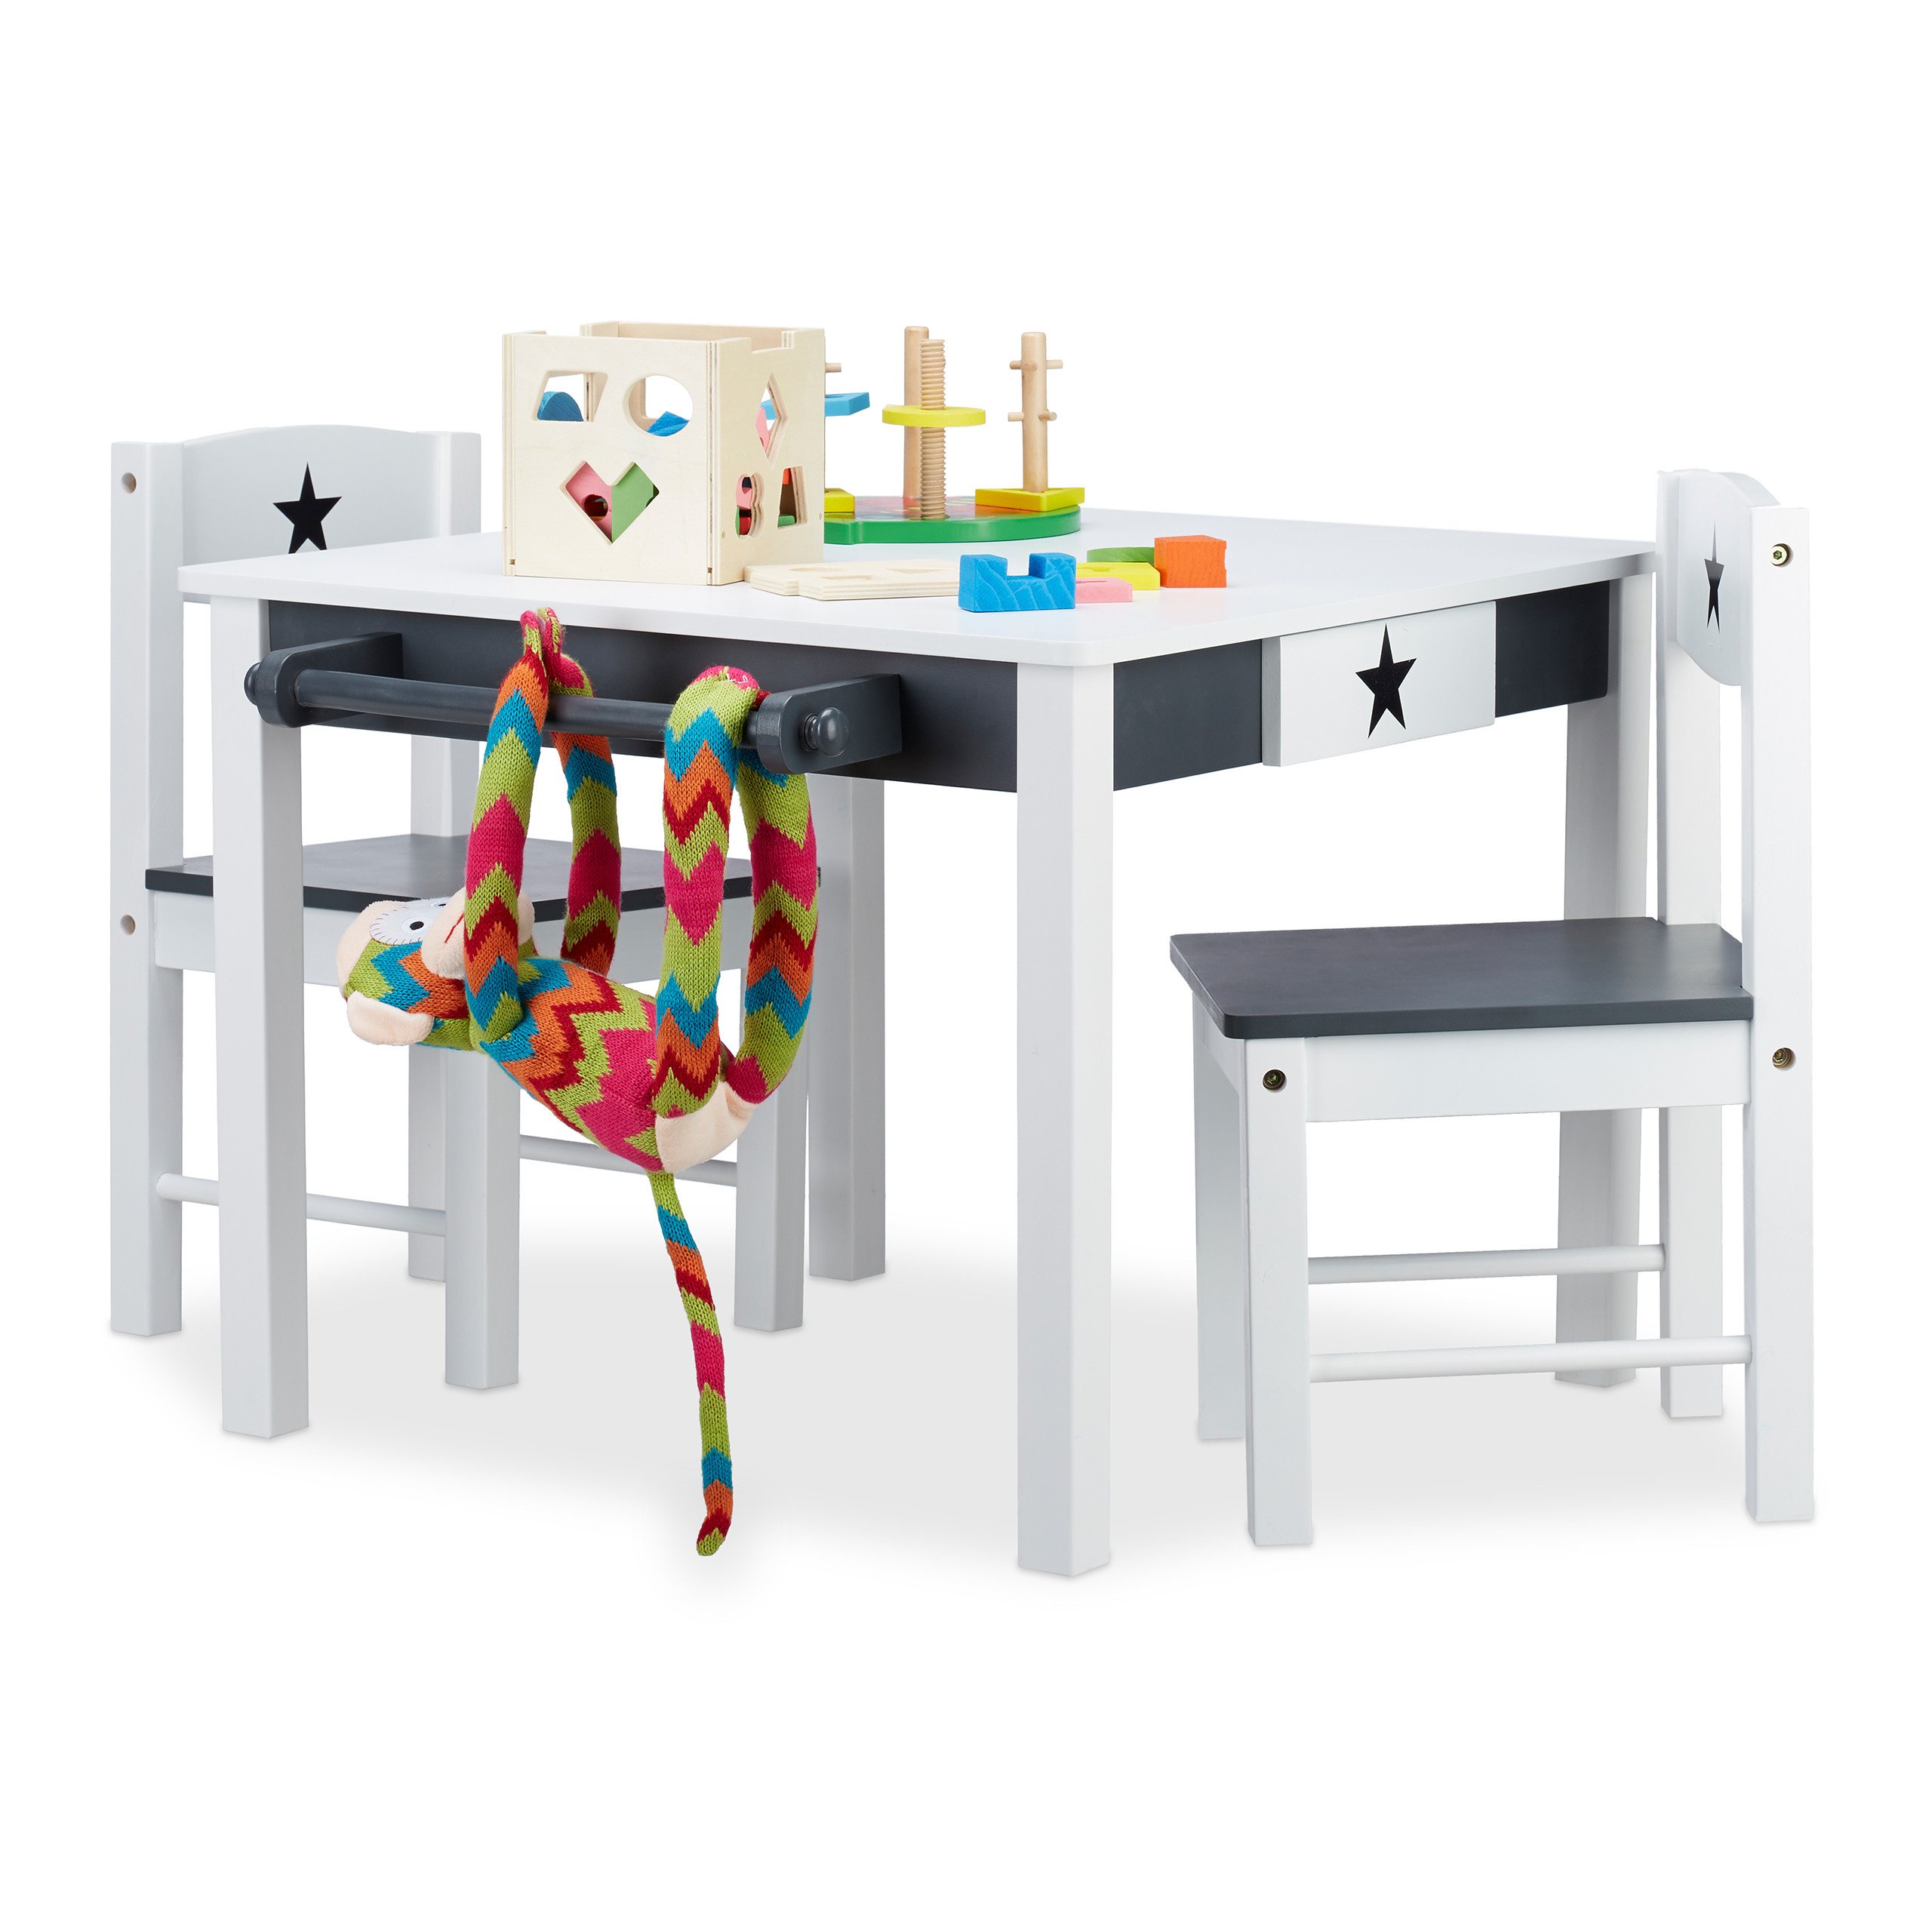 Group Seat Original Seating With Set Area Show Title Table ChairsChildren Details About Kids StarWoodChildren's XPkZiu